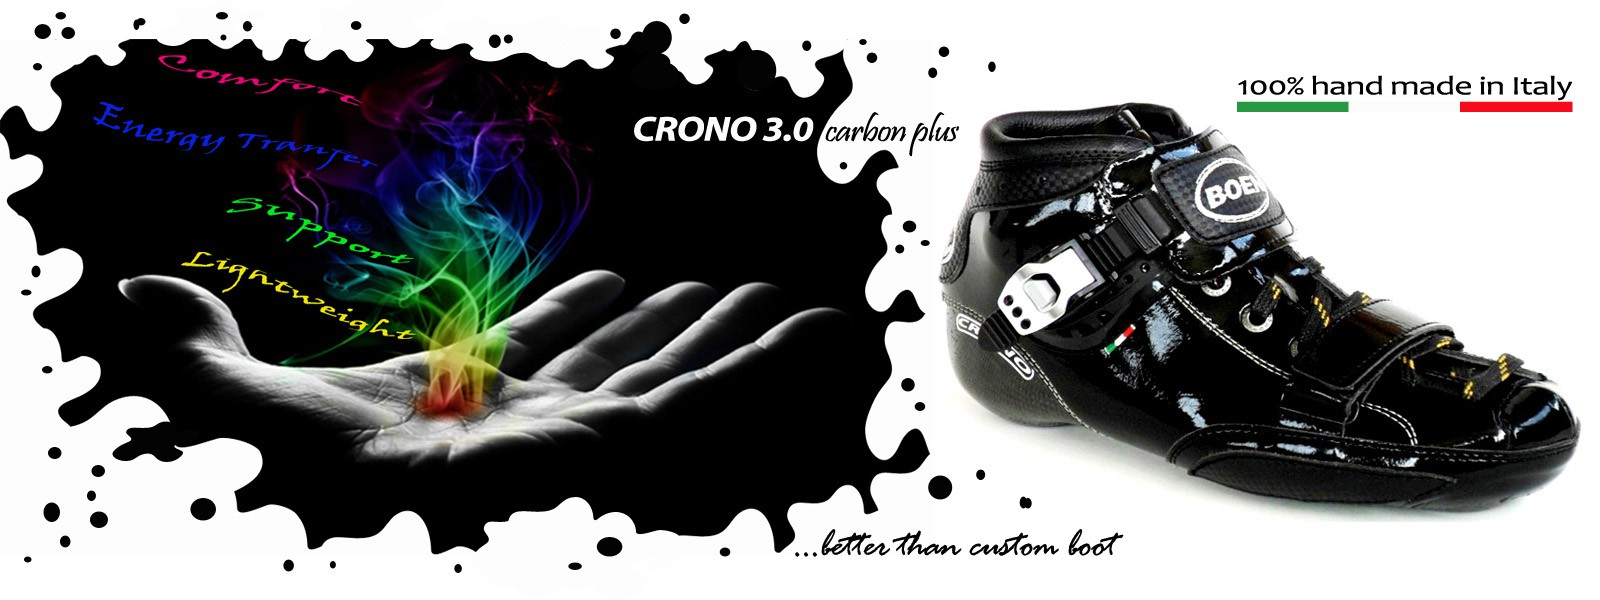 BOEN CRONO 3.0 Carbon Plus